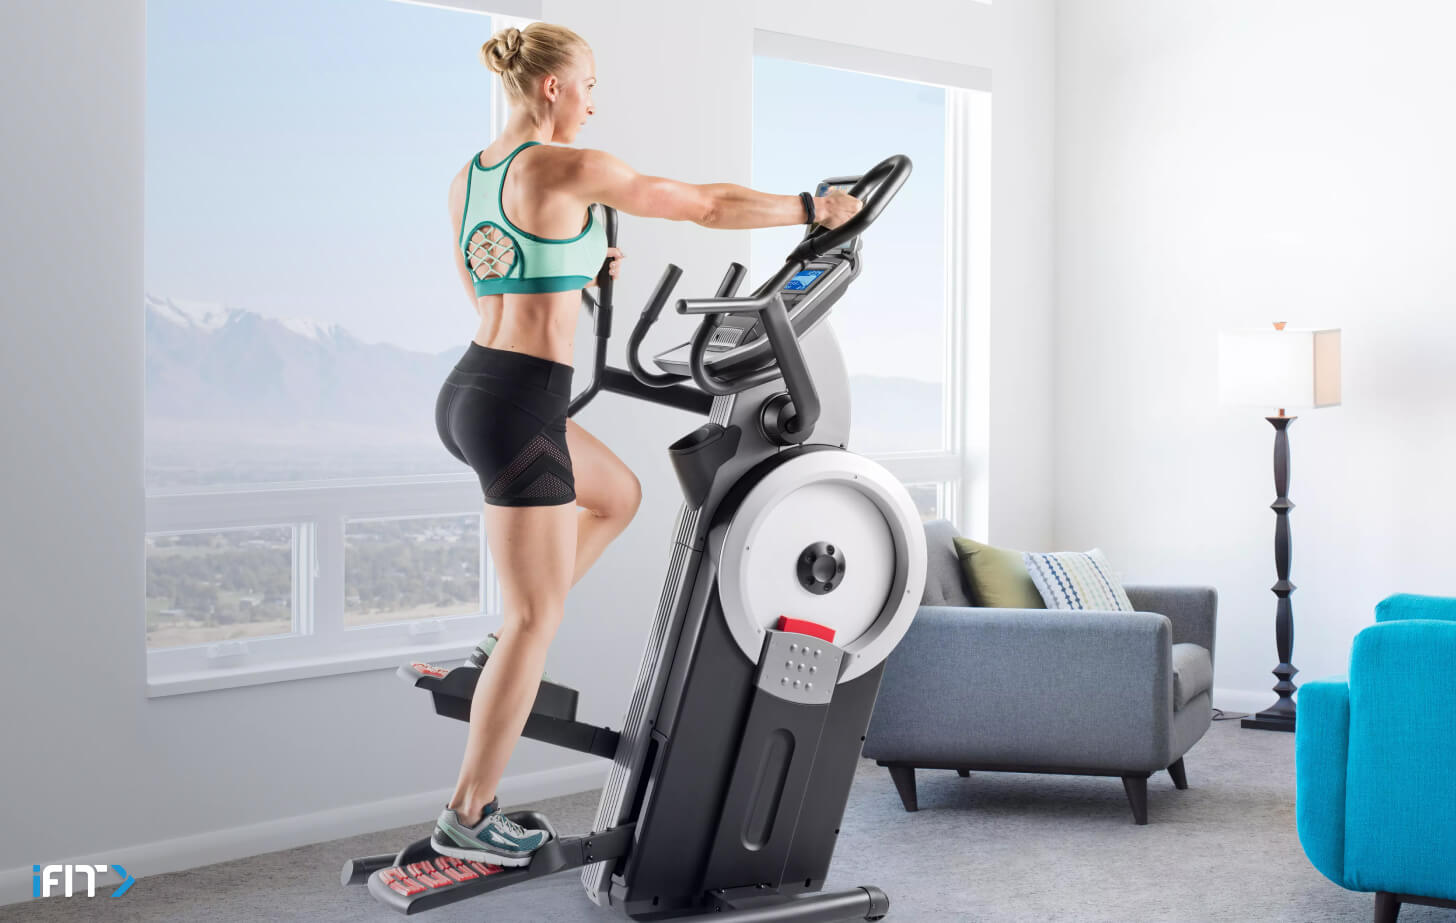 Woman completes an iFIT cardio workout